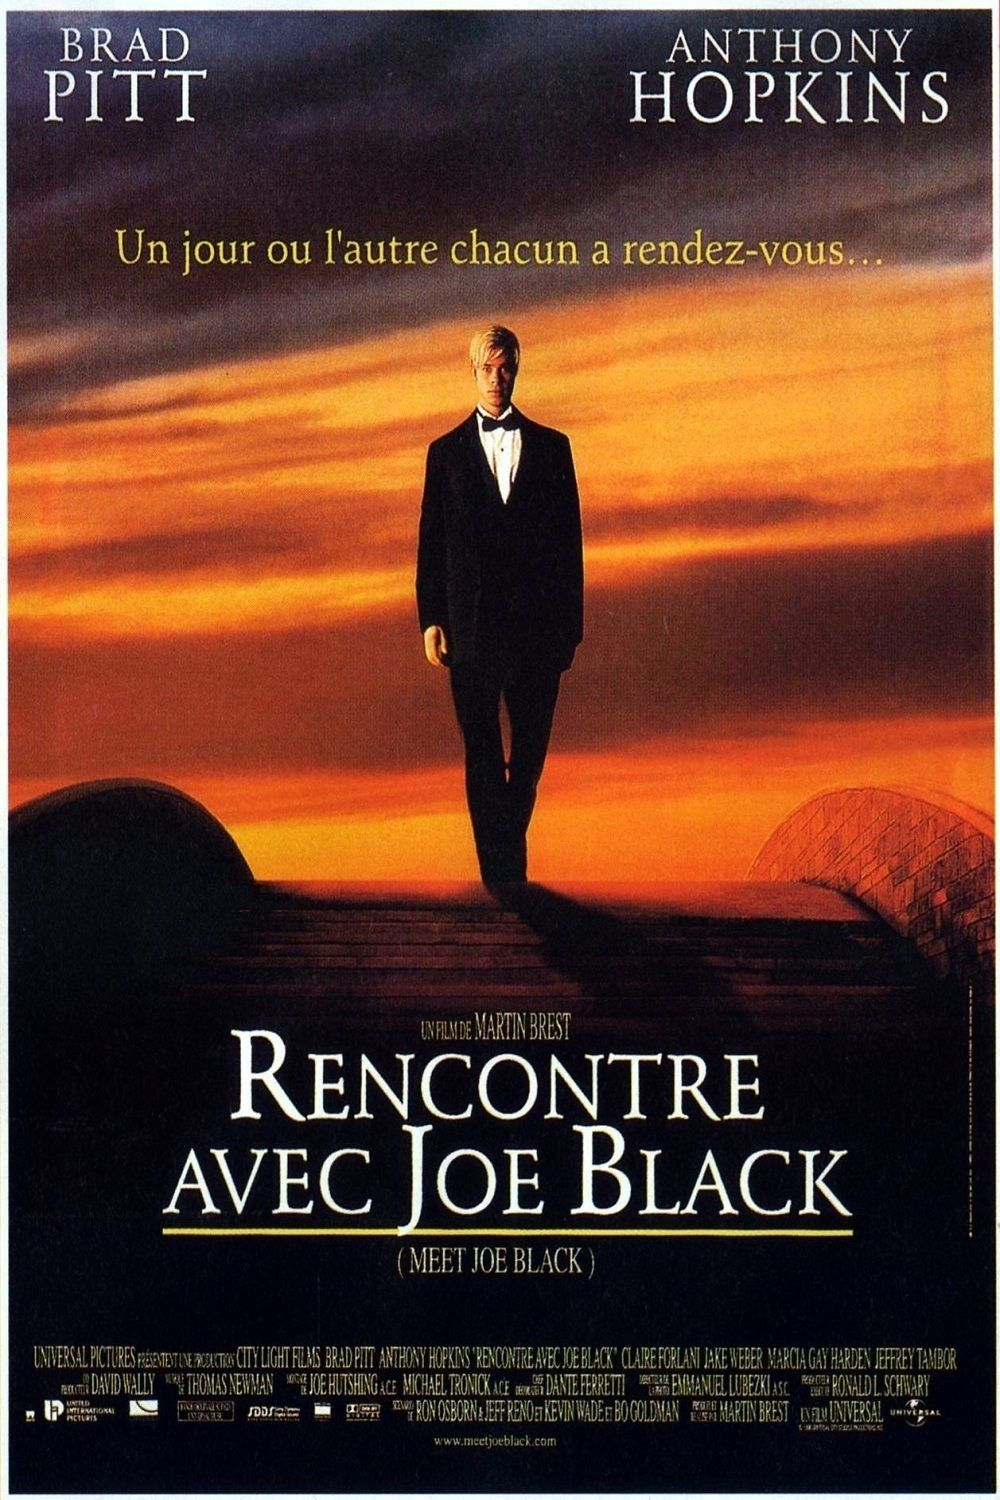 Rencontre avec Joe Black - film - AlloCin